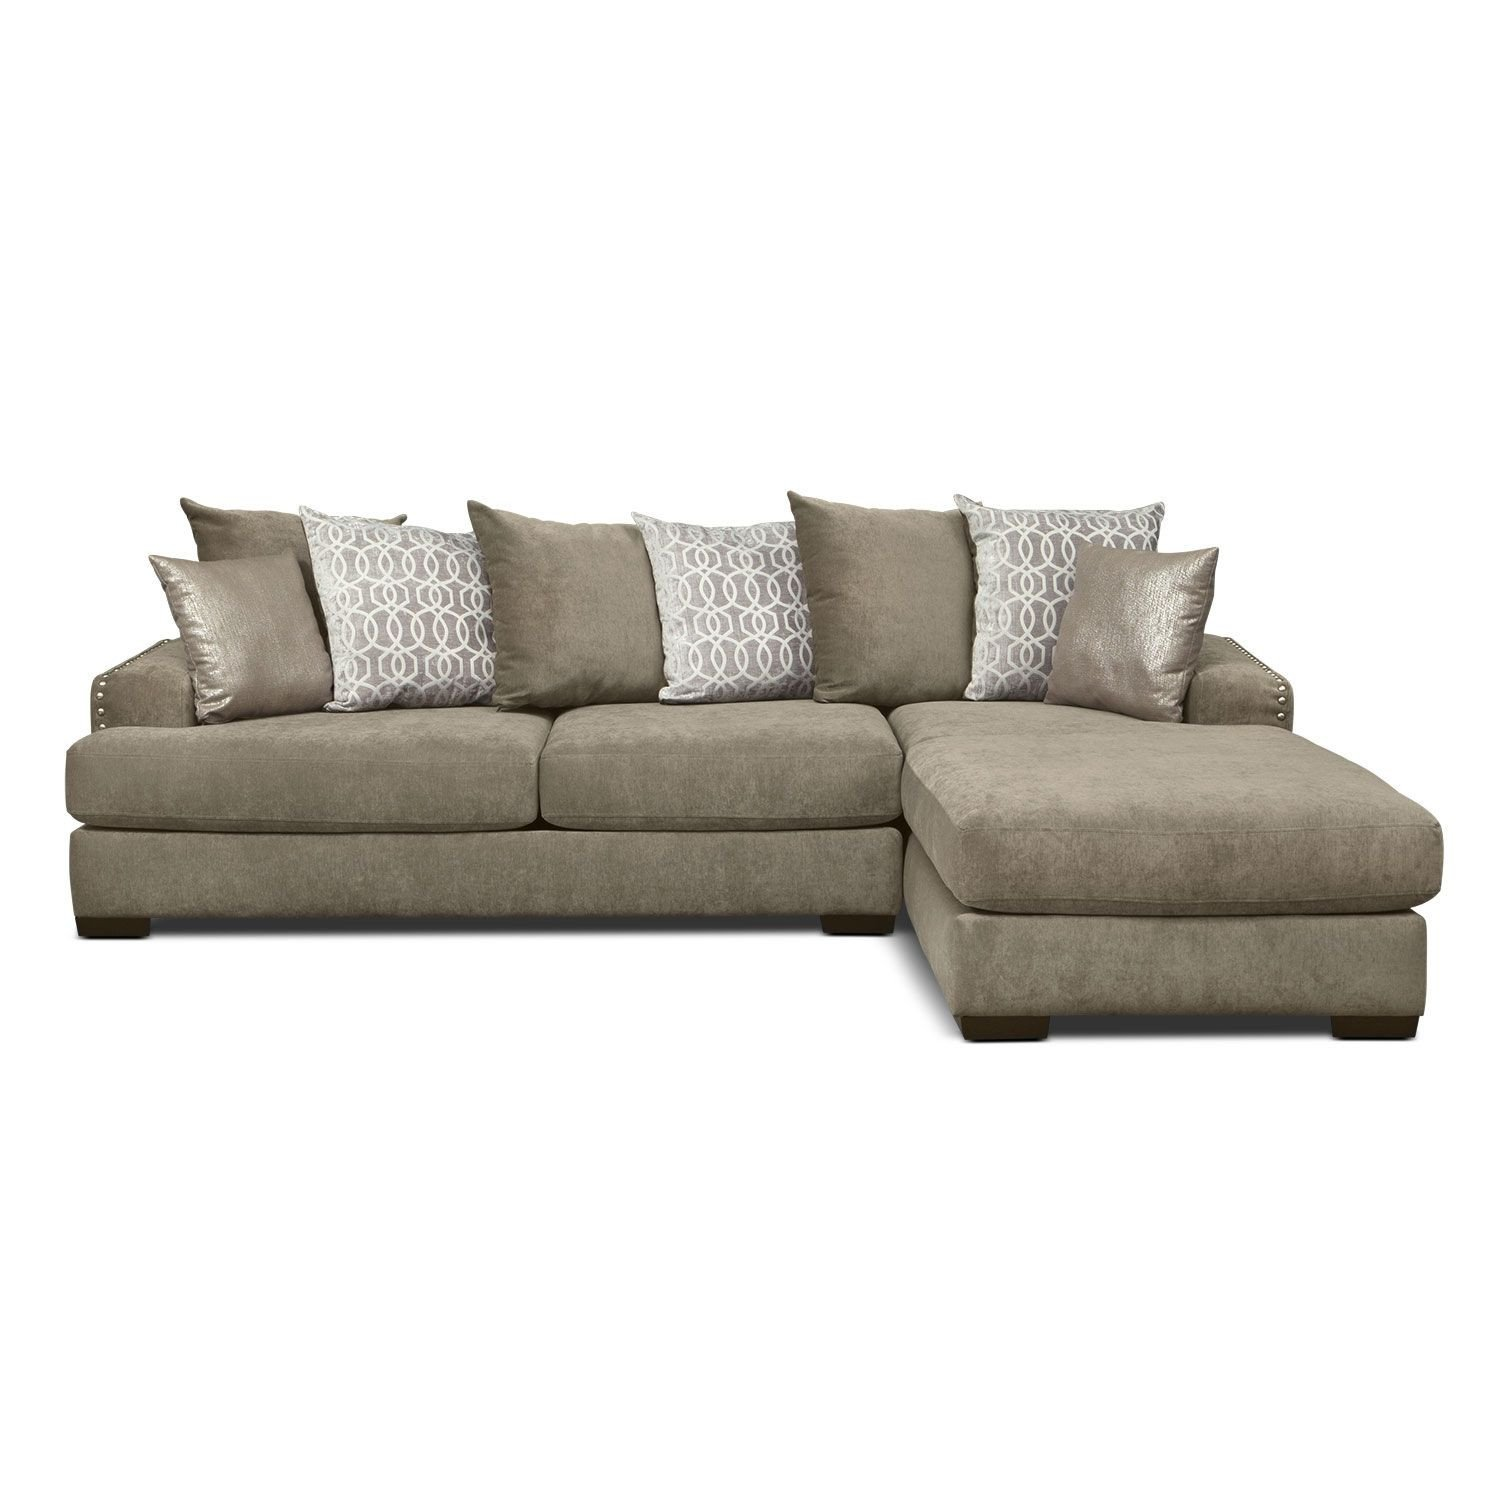 Value City Bedroom Furniture New $1000 Tempo 2 Pc Sectional with Right Facing Chaise